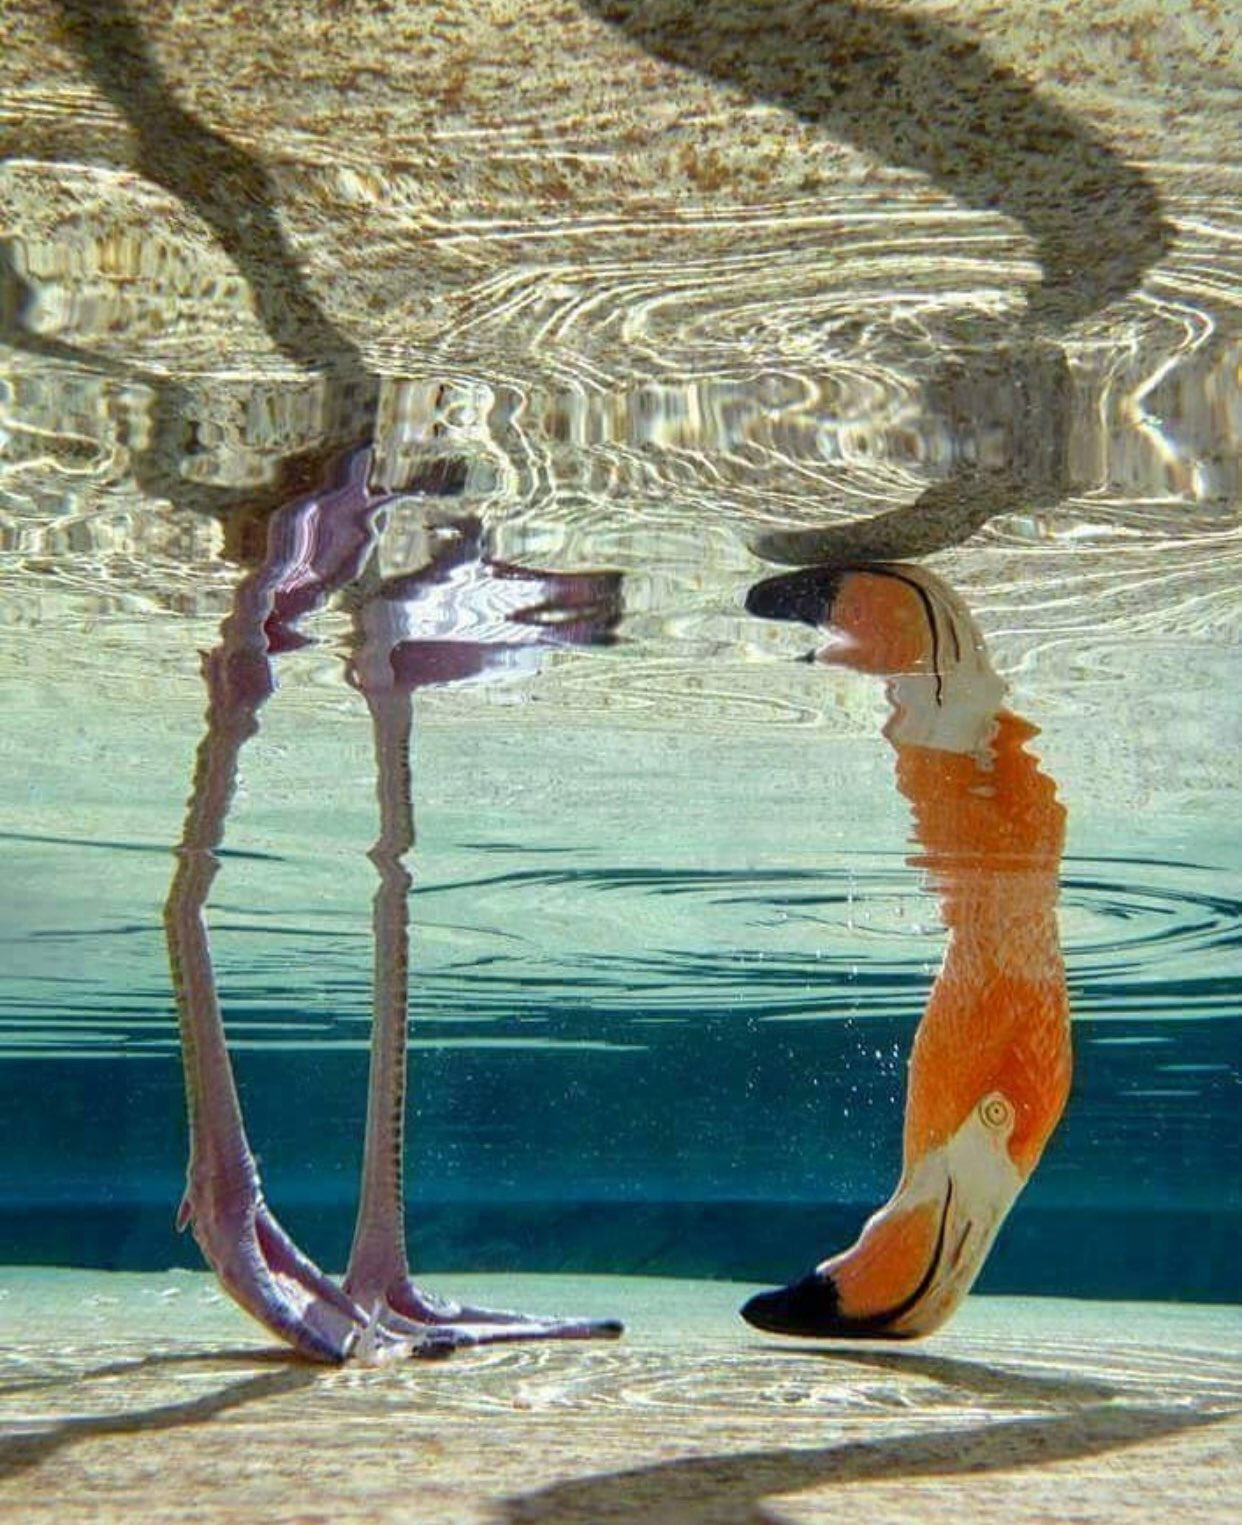 Flamingo underwater